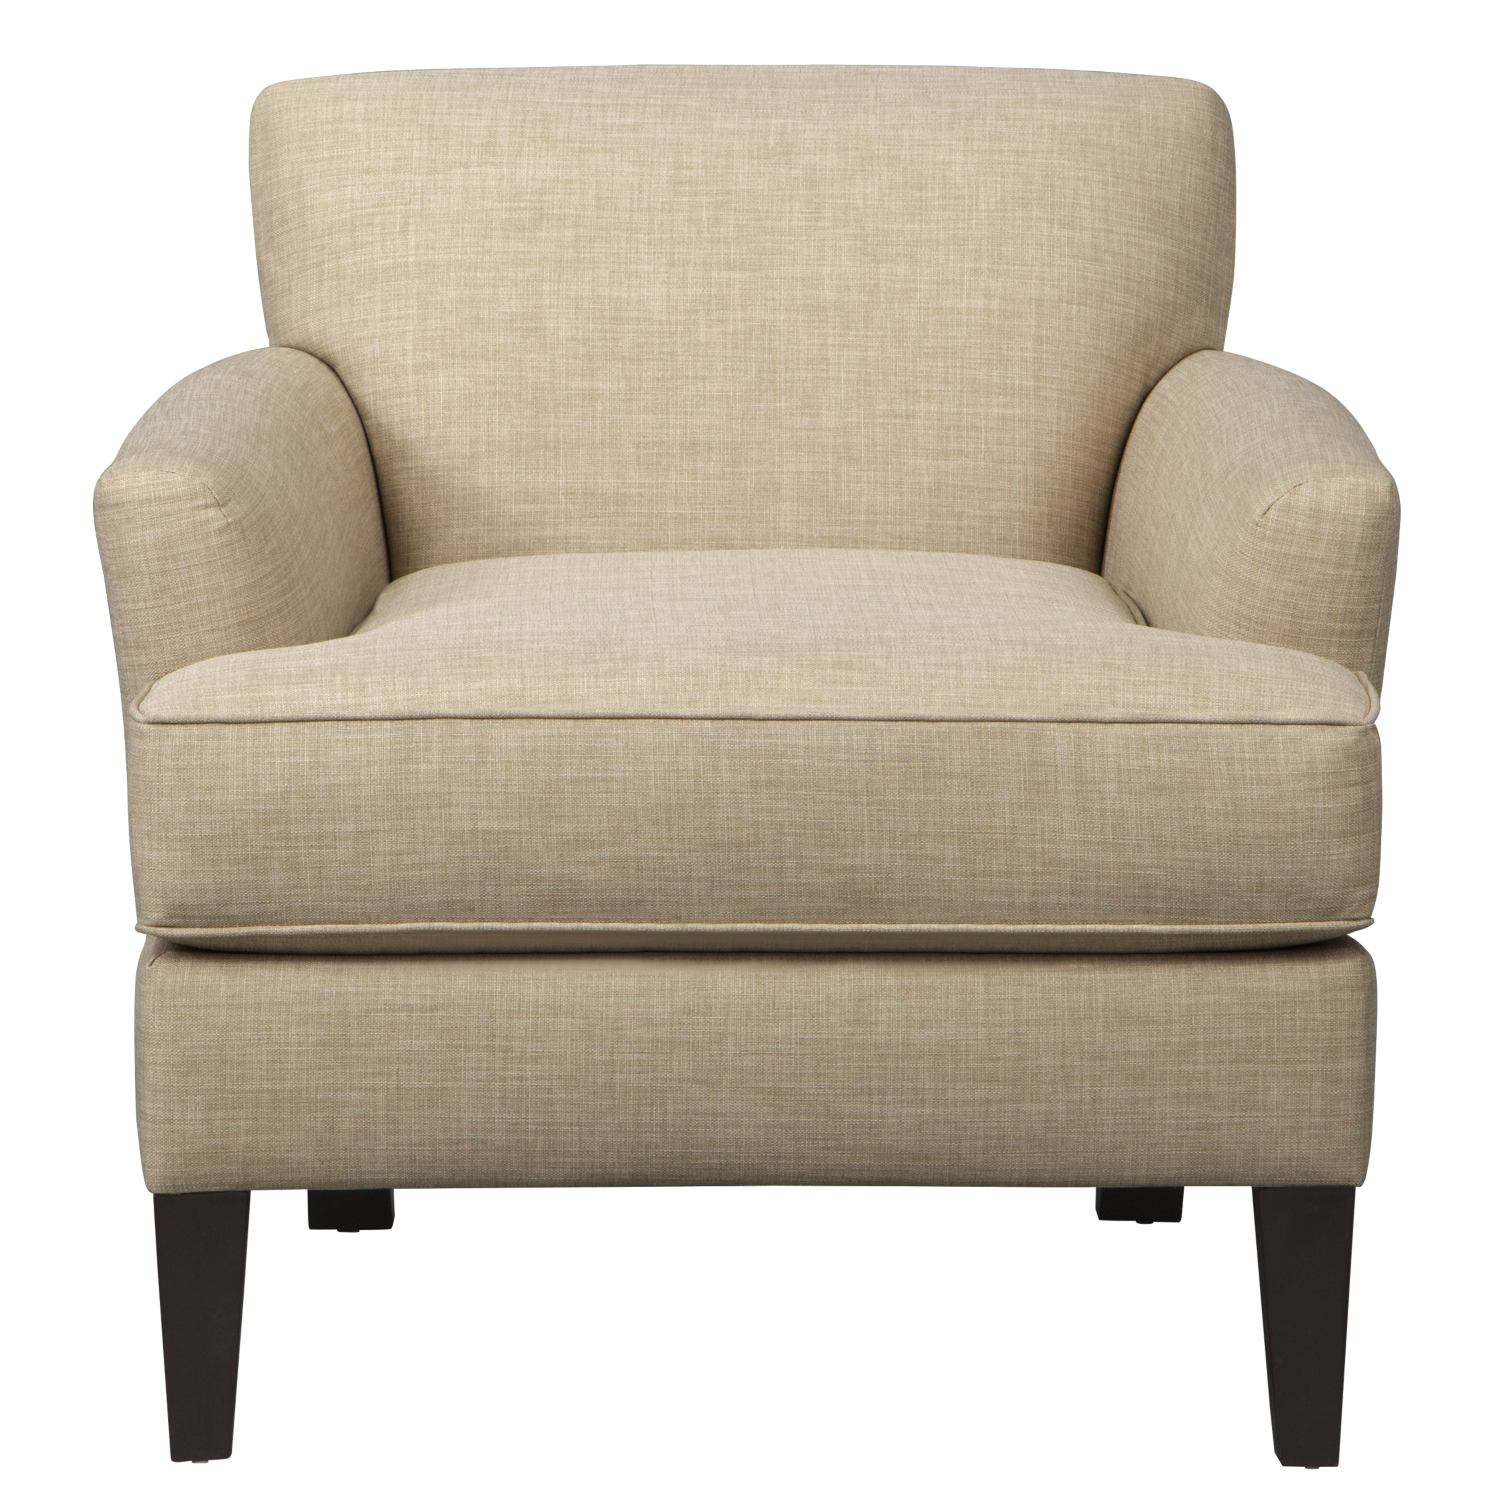 Living Room Furniture - Marcus Chair w/ Milford II Toast Fabric